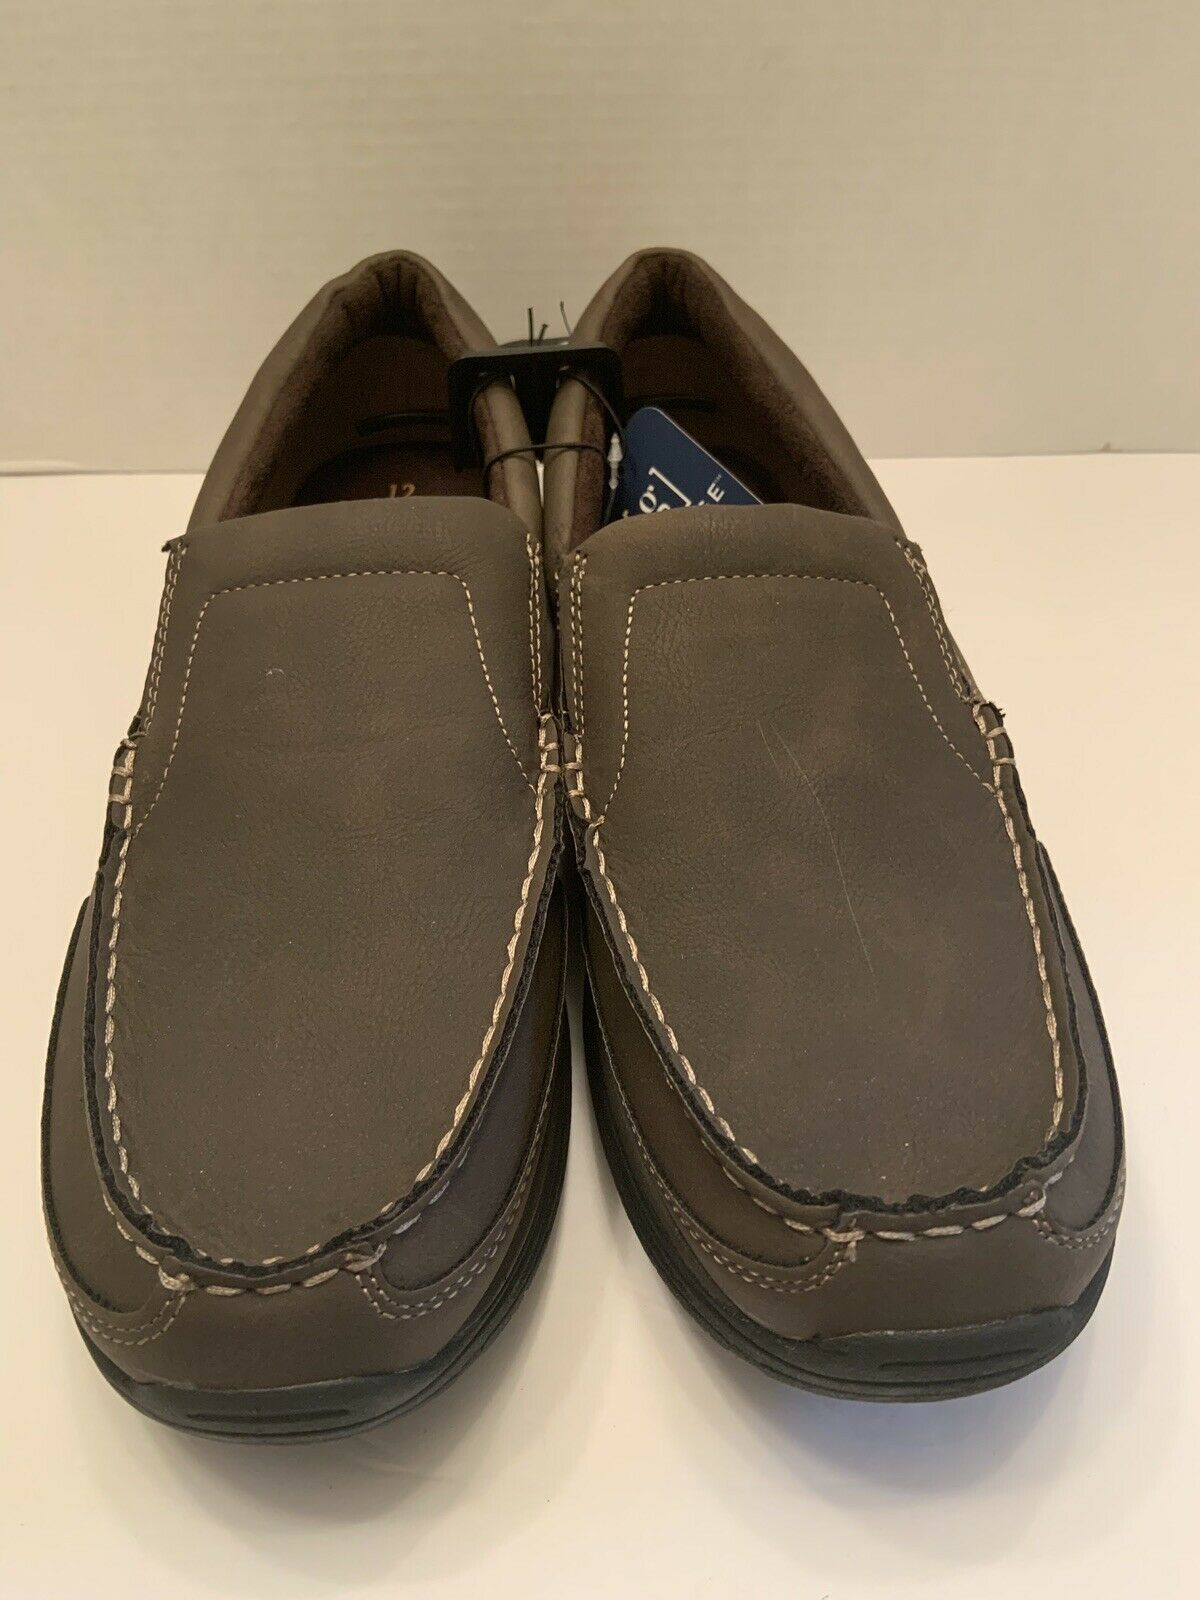 George Men Slip On Loafers Casual Memory Form Pick - Brown Or Black Sz 12 & 13